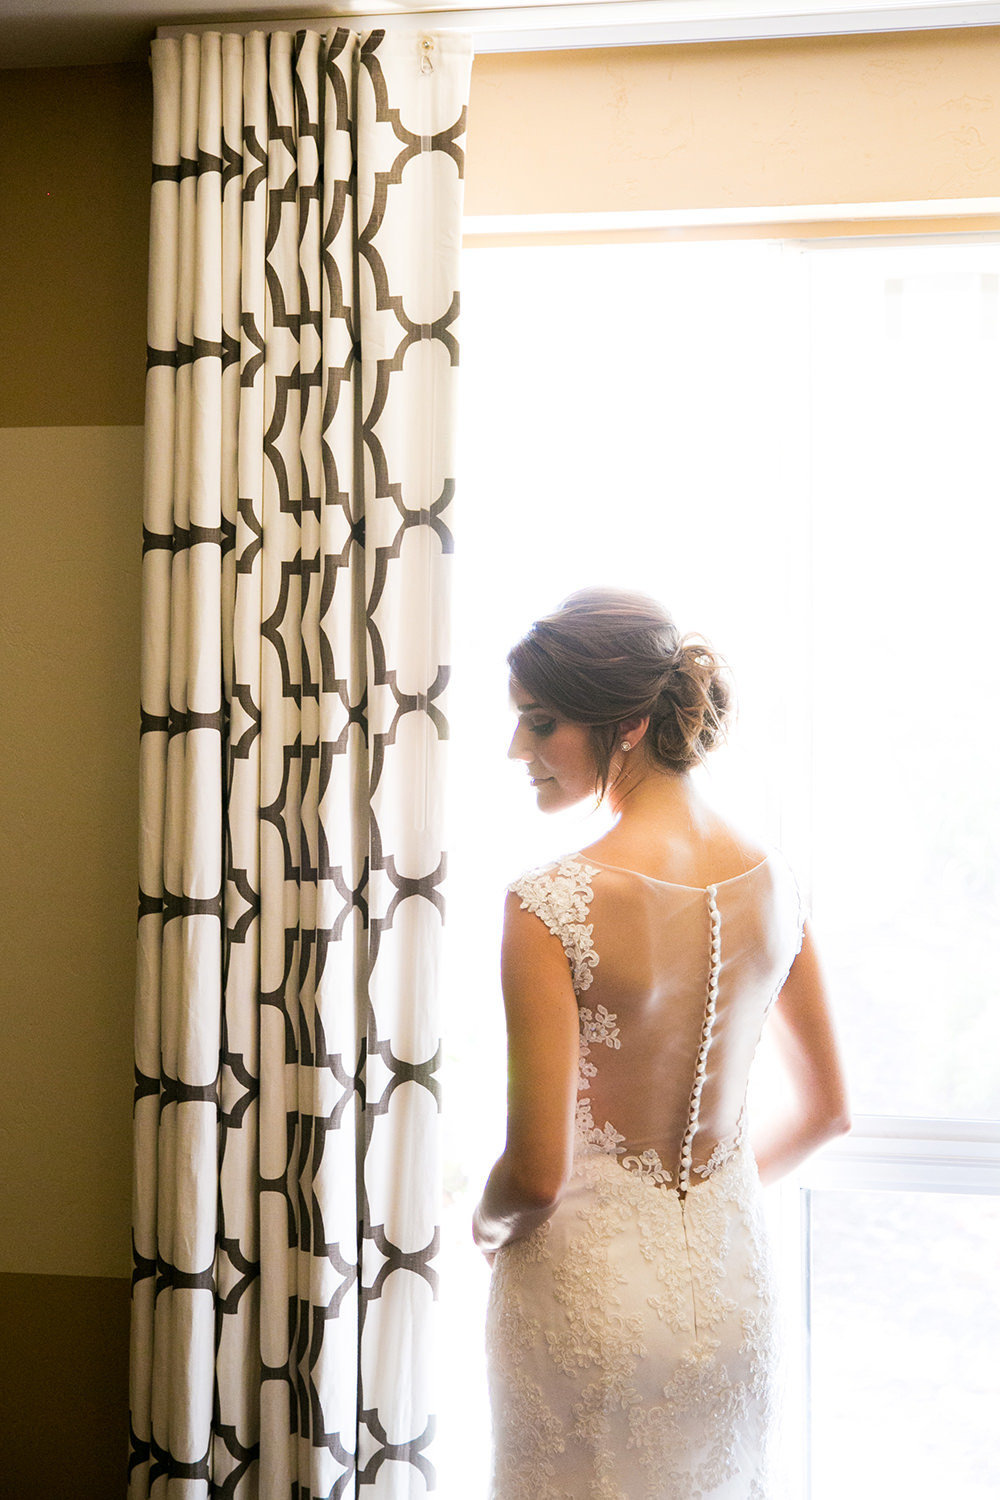 stunning bride image at carlton oaks country club getting ready